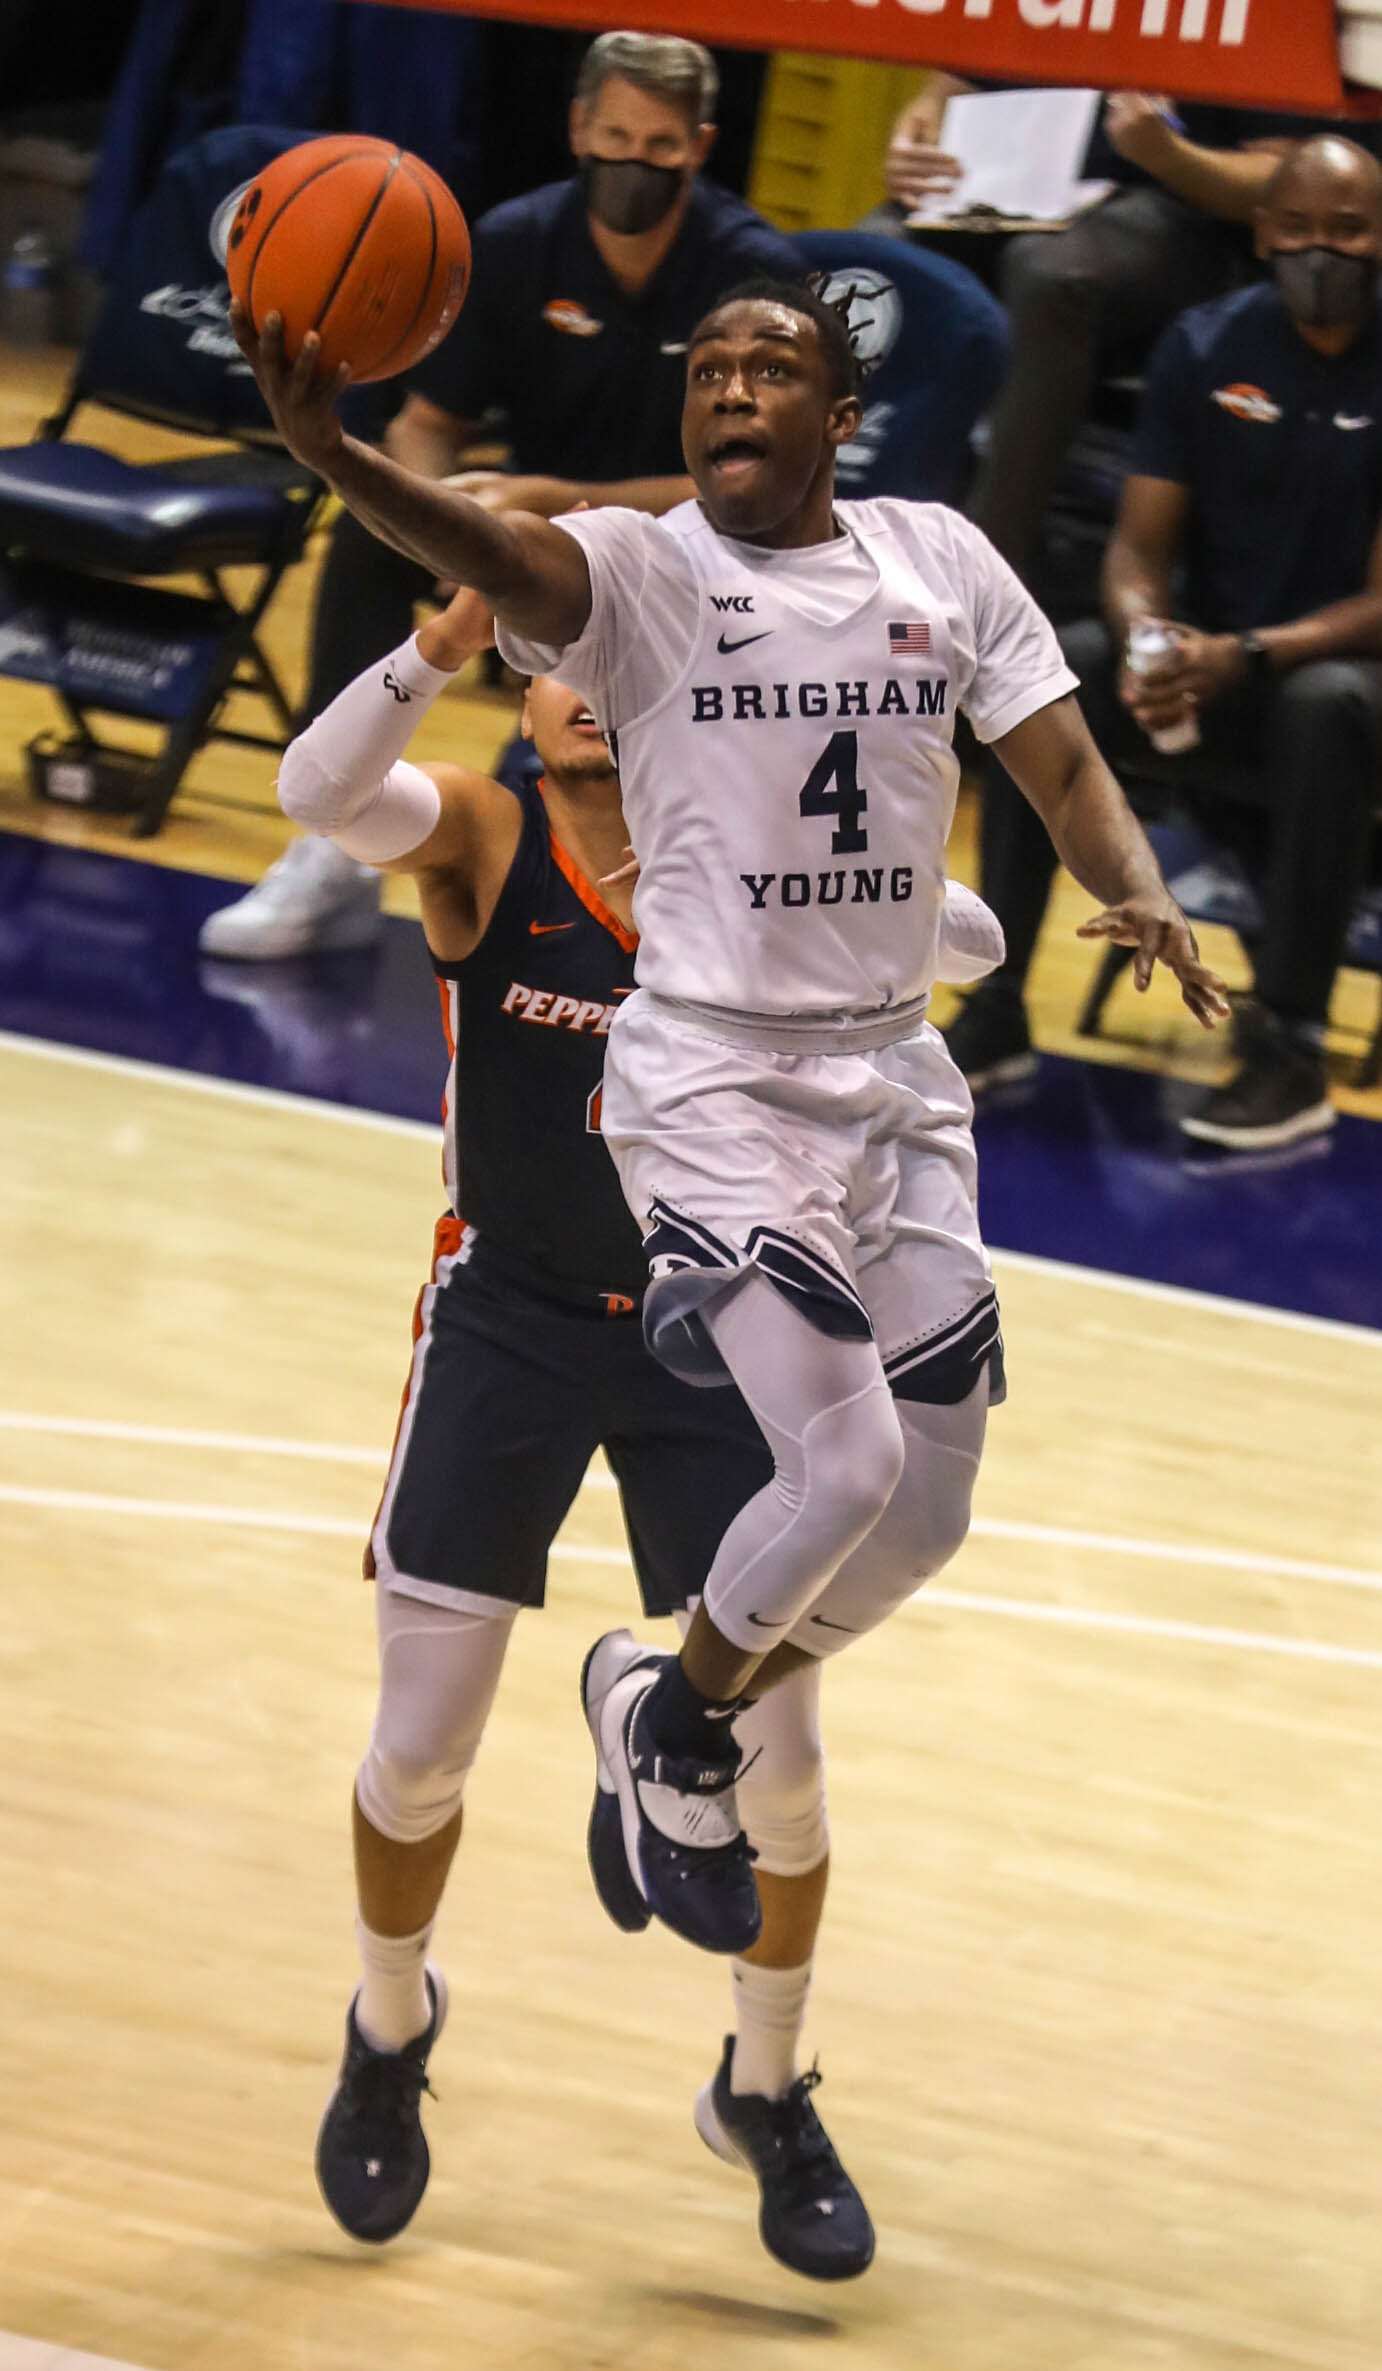 Brigham Young Cougars guard Brandon Averette (4) does a layup at the Marriott Center in Provo on Saturday, Jan. 23, 2021.